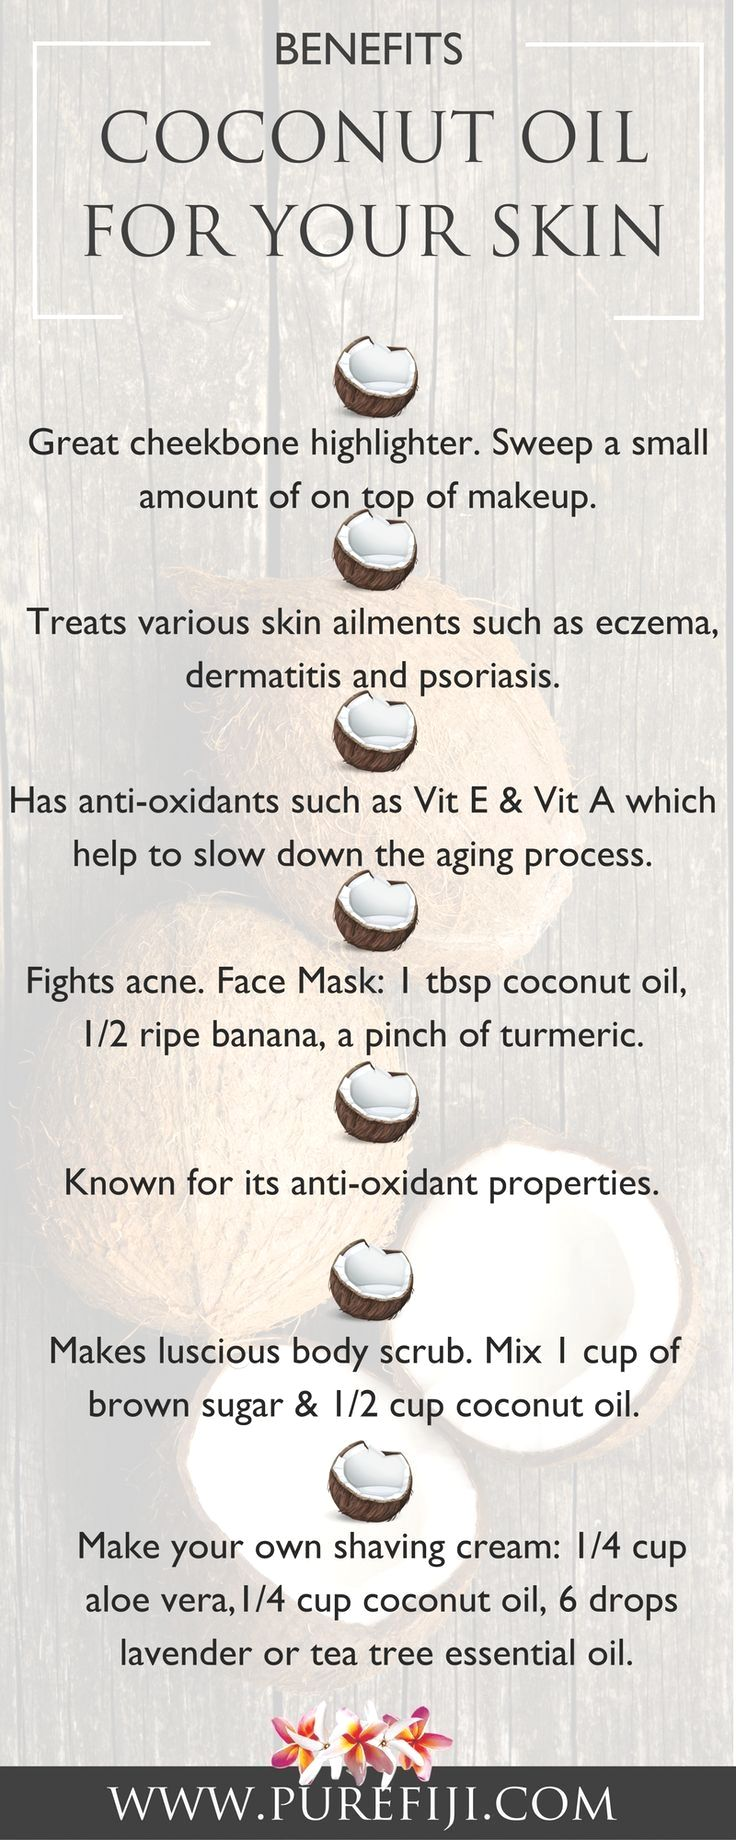 7 Benefits Of Coconut Oil For Skin Health Care Today Virgin Coconut Oil Benefits Coconut Oil For Skin Oils For Skin